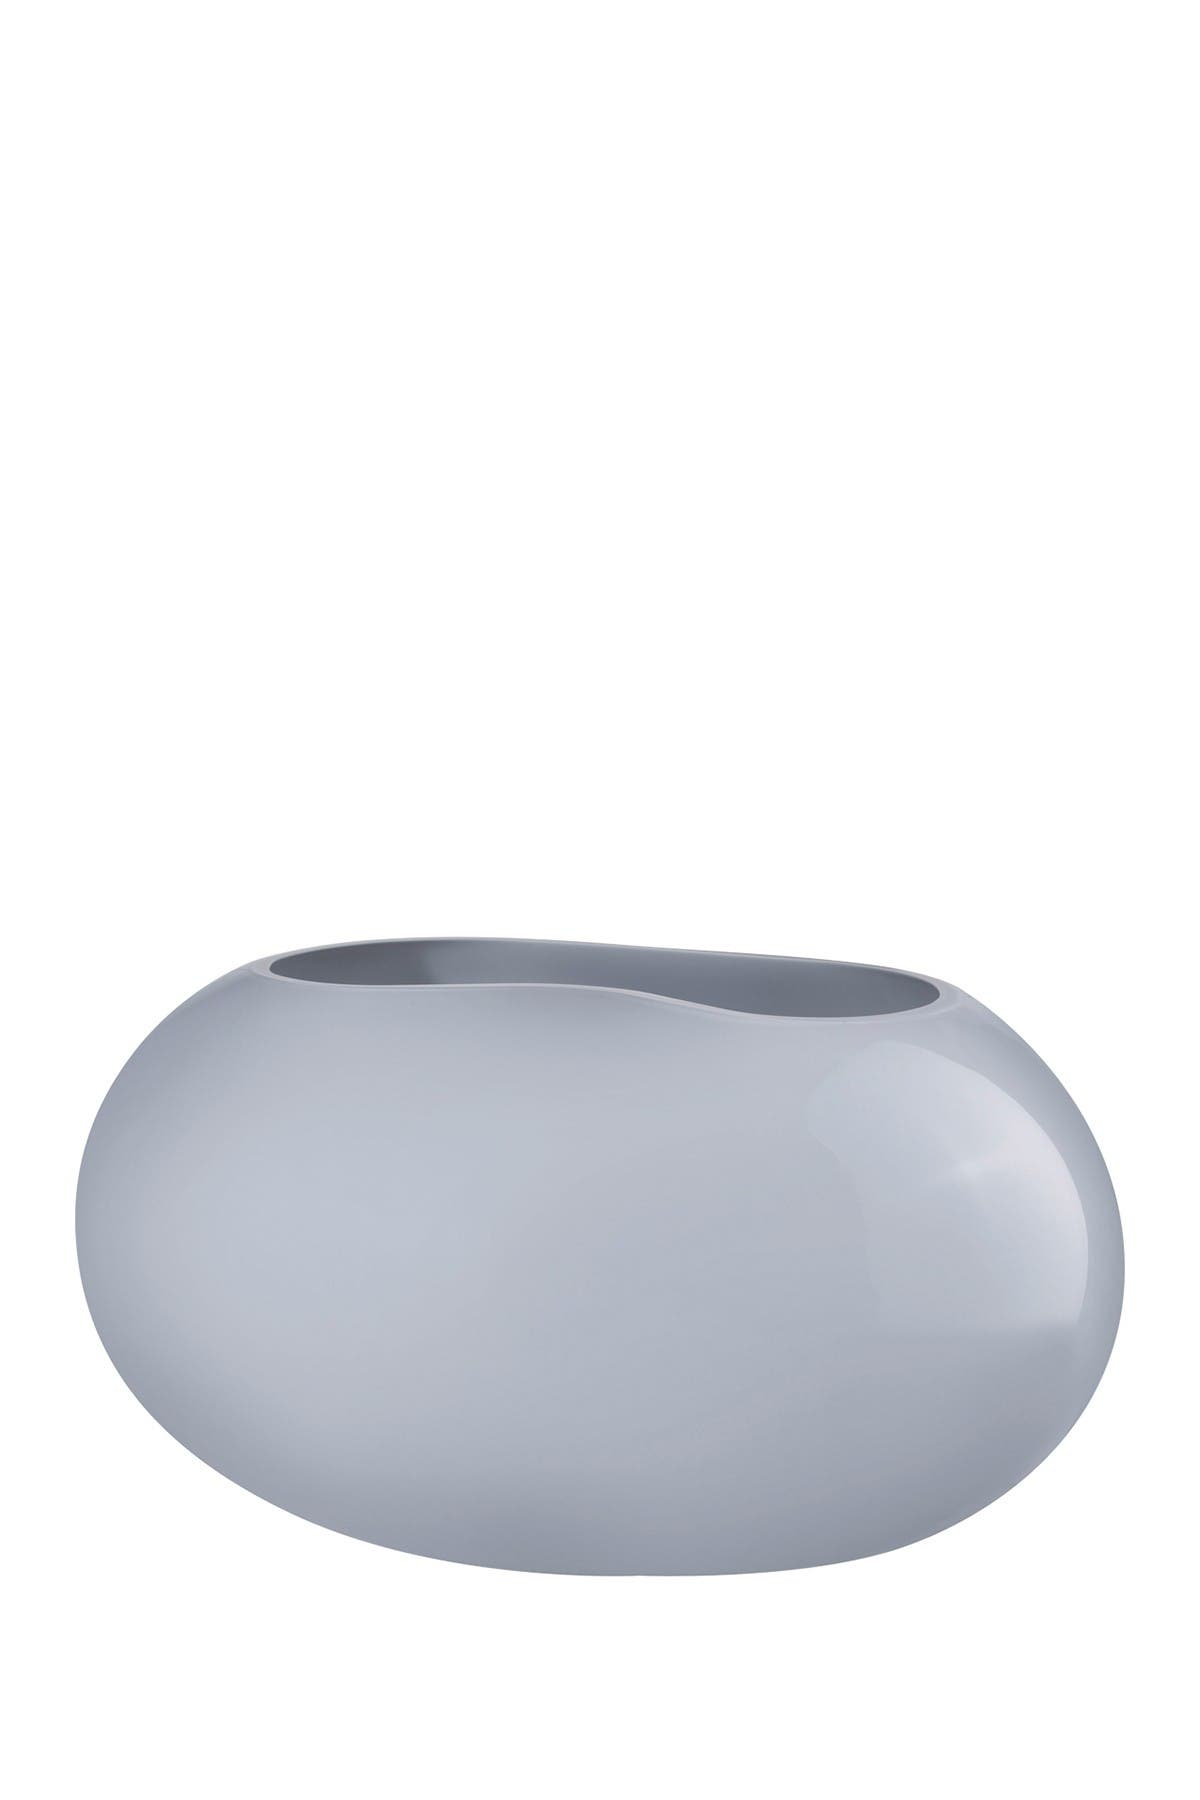 Image of Nude Glass Satin Vase - Small - Opal Grey